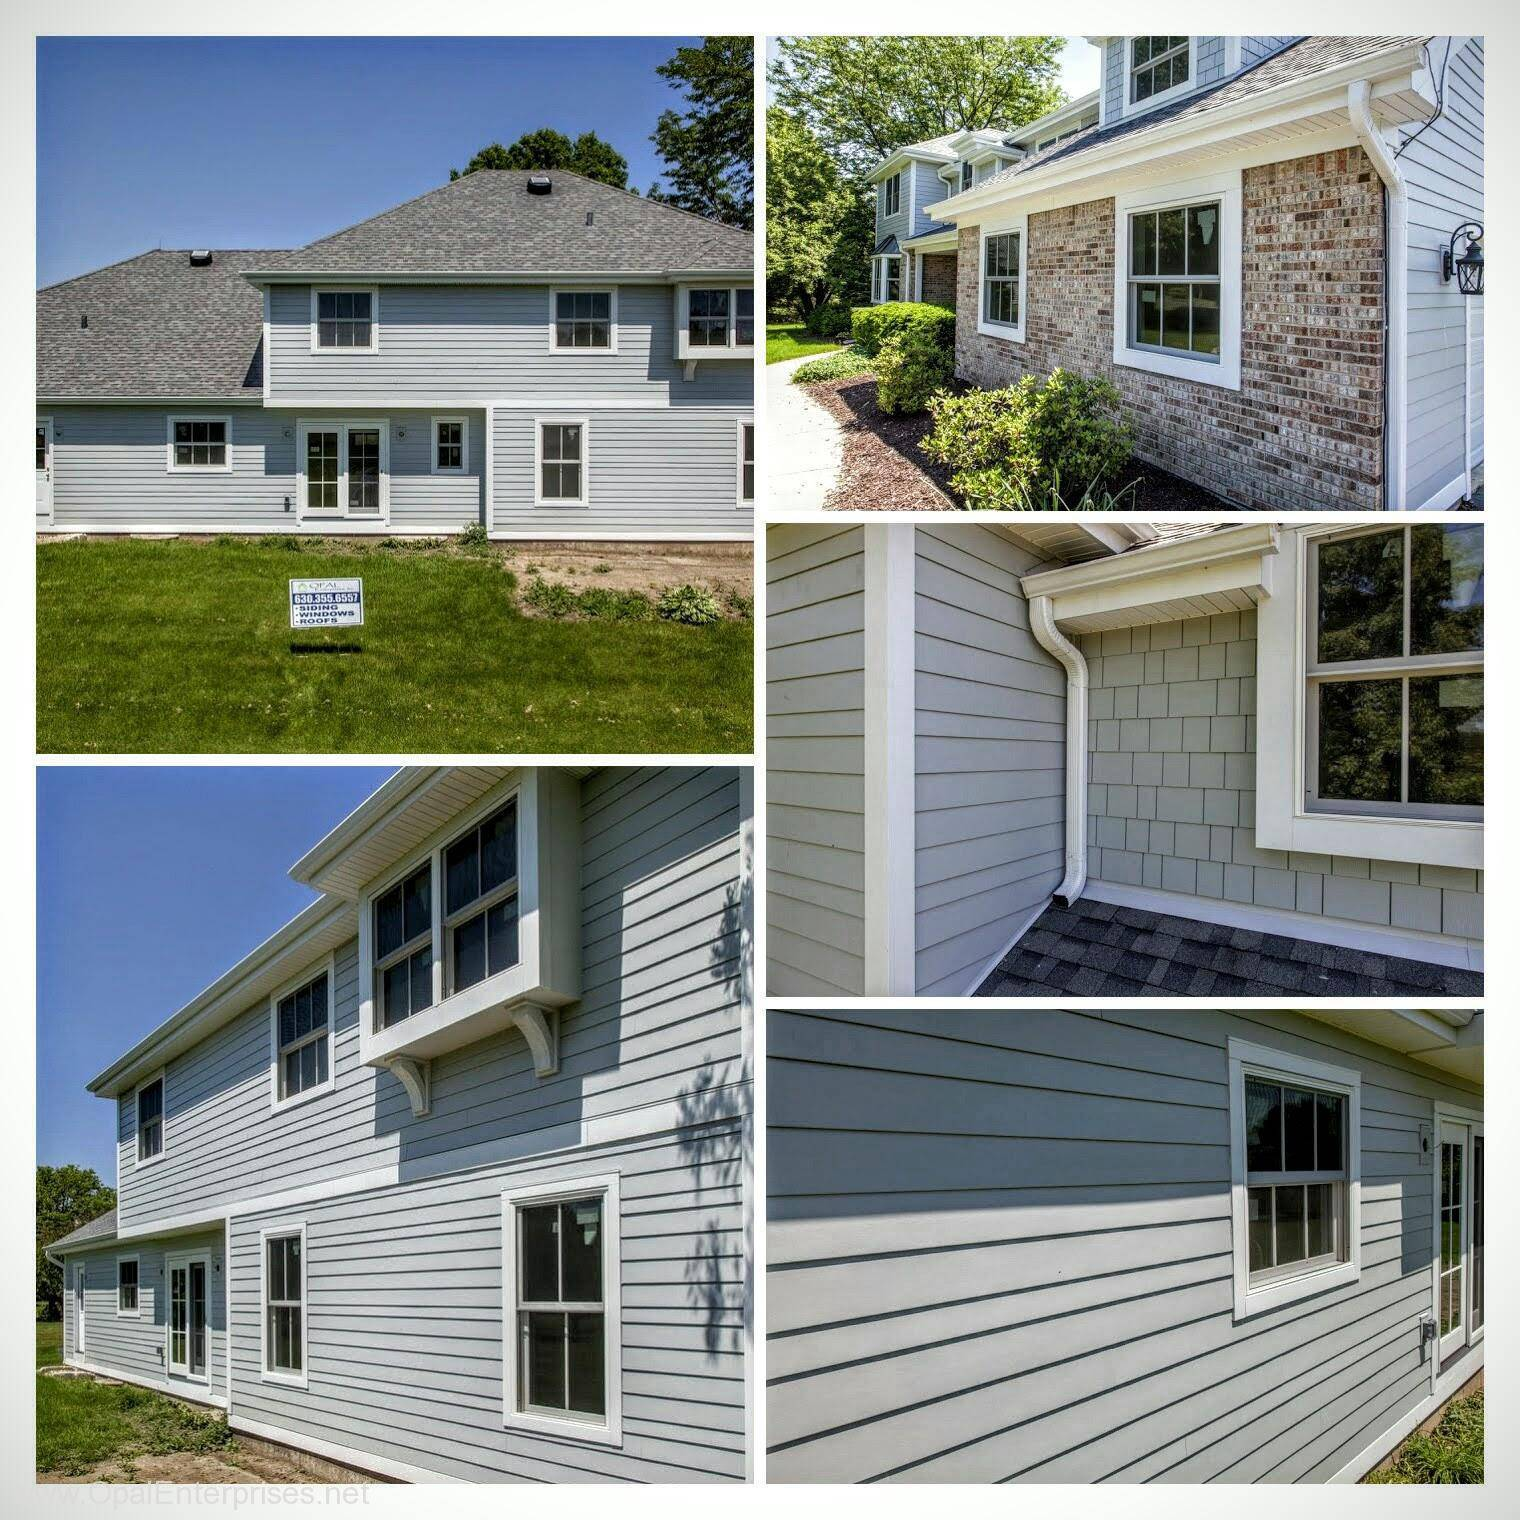 Trendy New Exterior With Mixed Siding Widths